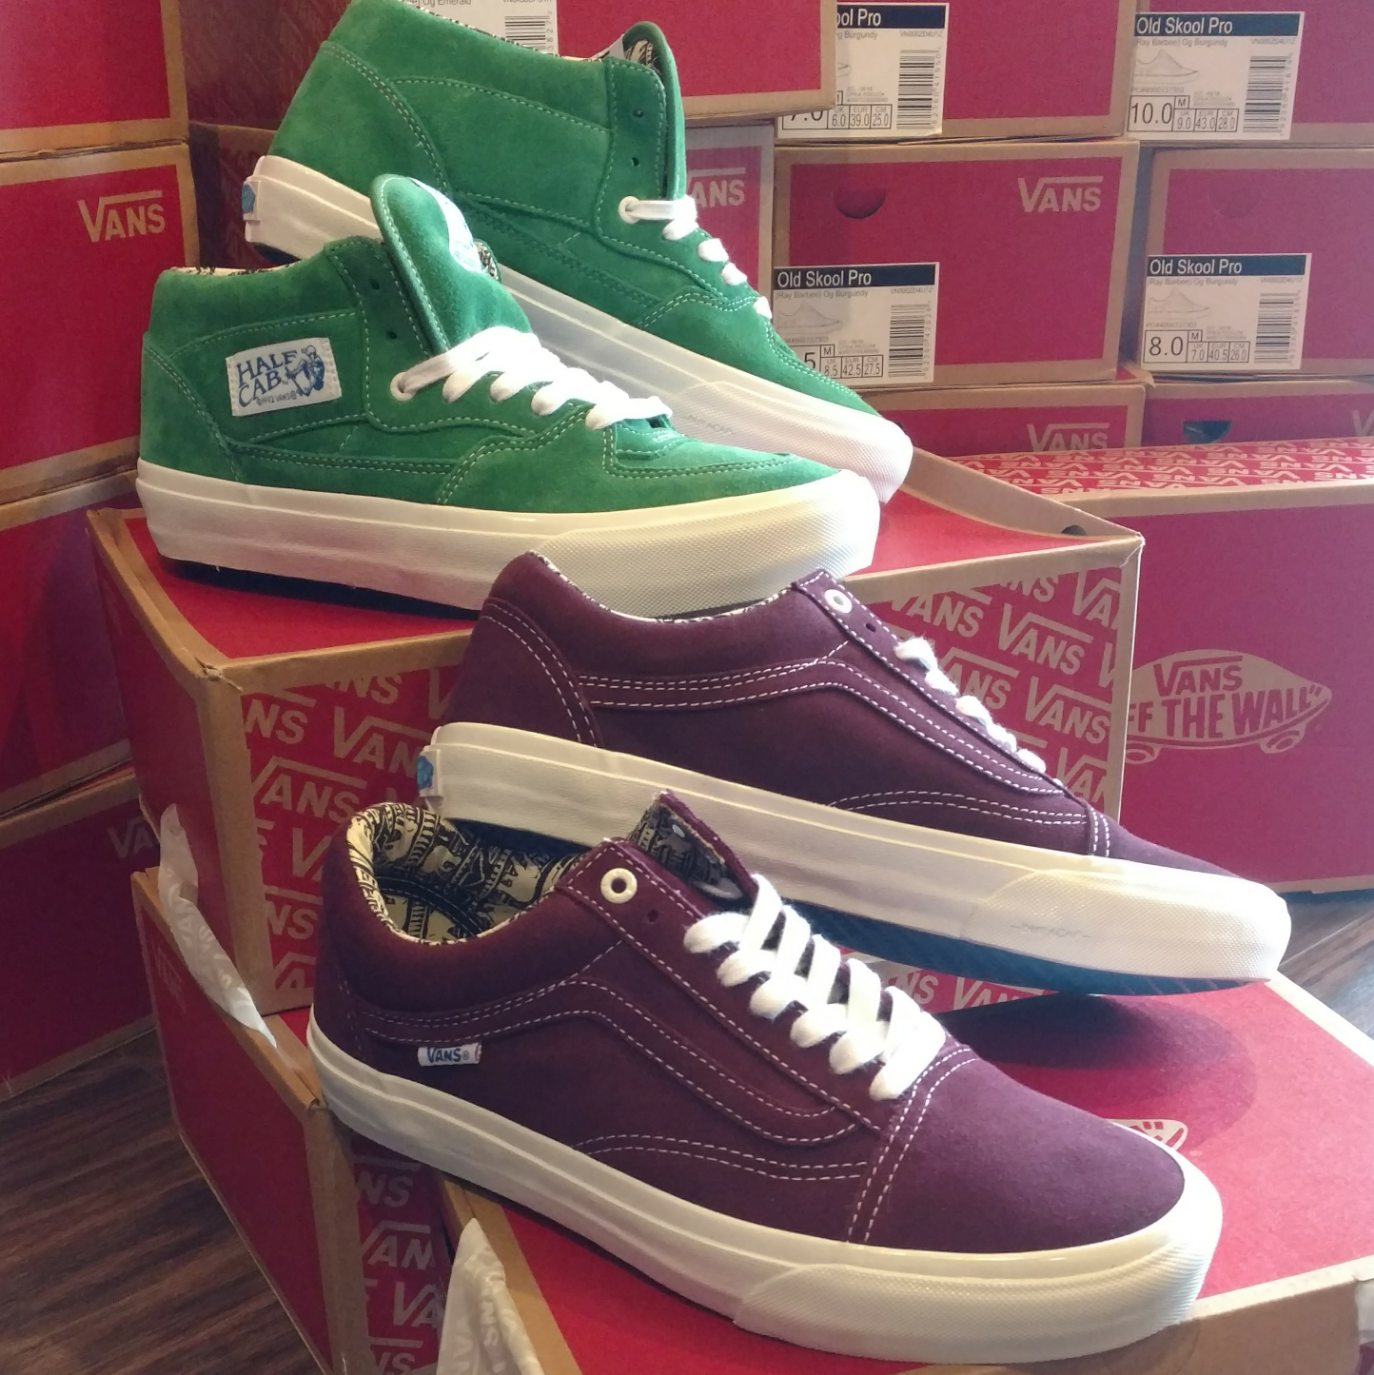 24da3b20819109 New Vans Ray Barbie Collection Just Came In! Old Skool Pro   Half Cab Pro s.